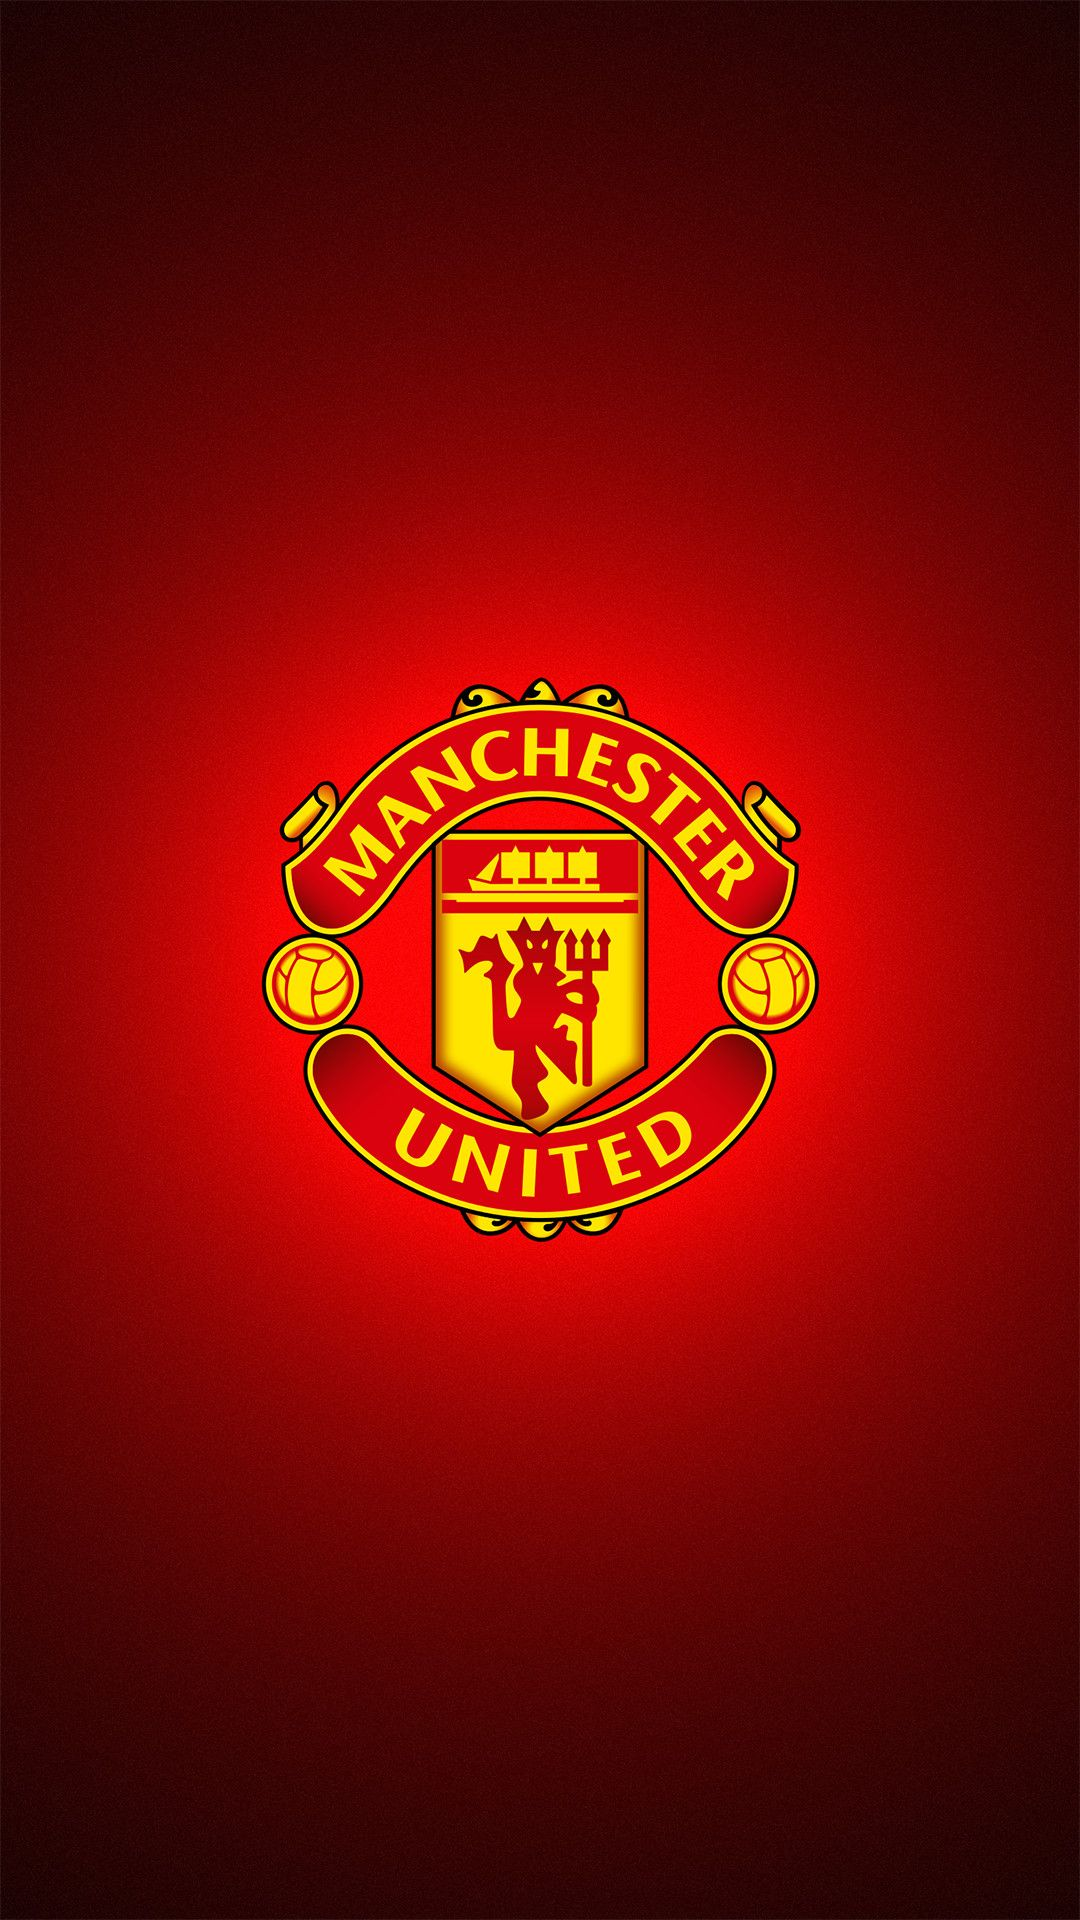 manchester united wallpapers football red legends